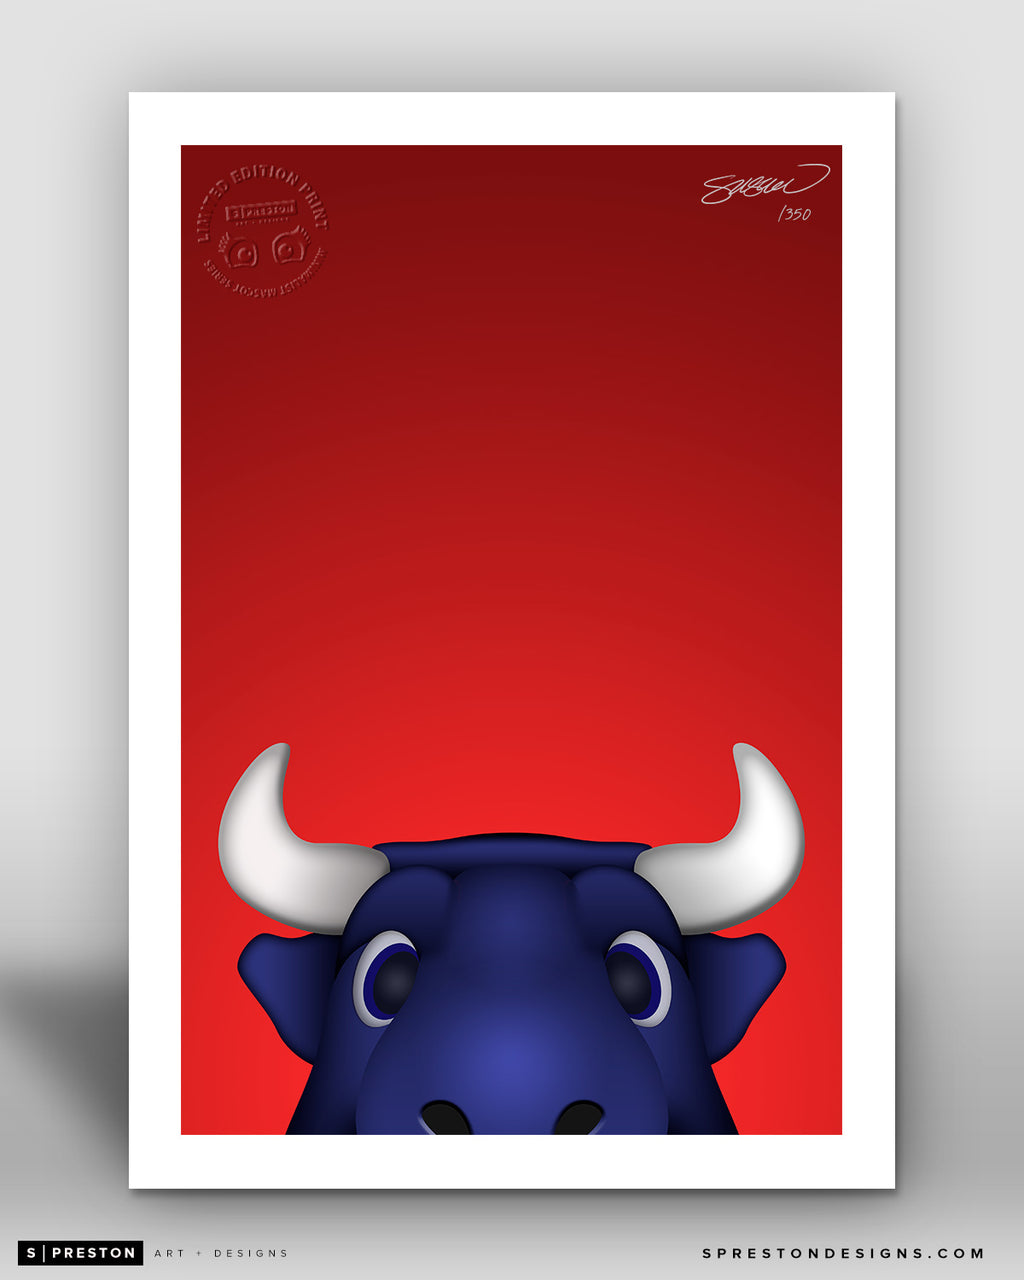 Minimalist Toro - Houston Texans - S. Preston